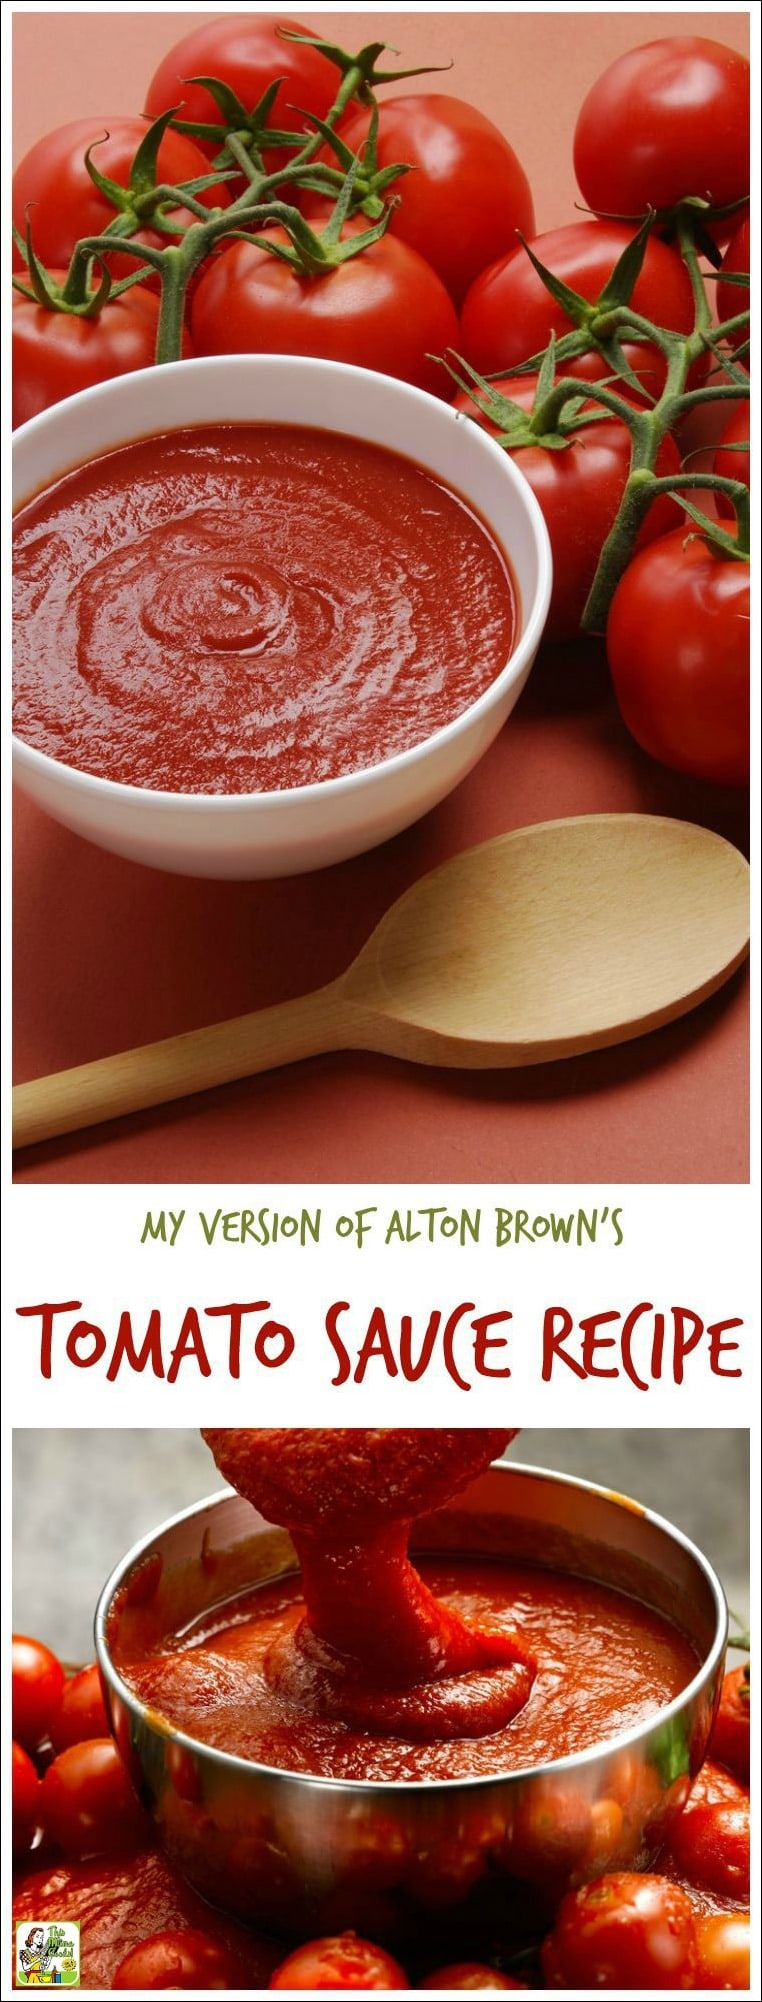 Looking for an easy homemade tomato sauce recipe? Or want to make easy fresh tomato pasta sauce from scratch? Here\'s my version of Alton Brown\'s tomato sauce recipe. Double the recipe and freeze half and you\'ll have spaghetti sauce in the freezer ready to go for dinner later! #recipe #easy #recipeoftheday #healthyrecipes #glutenfree #dinner #spaghetti #sauce #tomato #sauce #easyrecipes